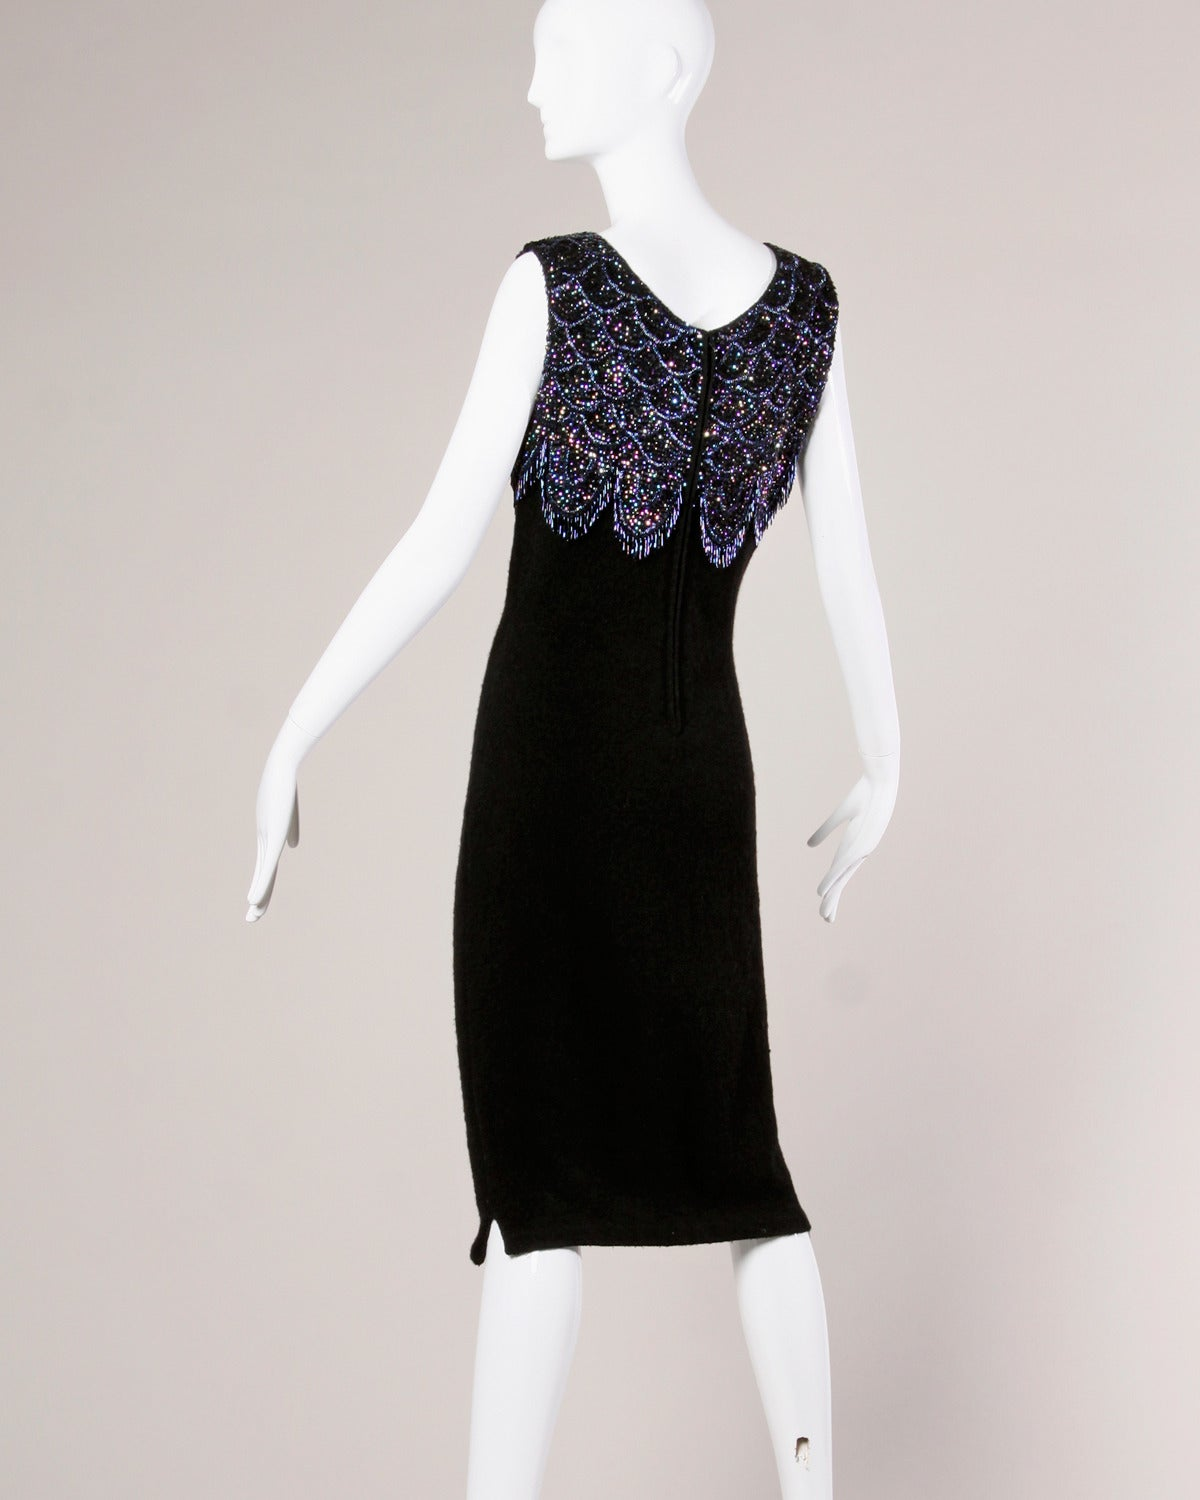 Women's 1960s Vintage Black Wool Knit Cocktail Dress with Iridescent Blue Beading For Sale